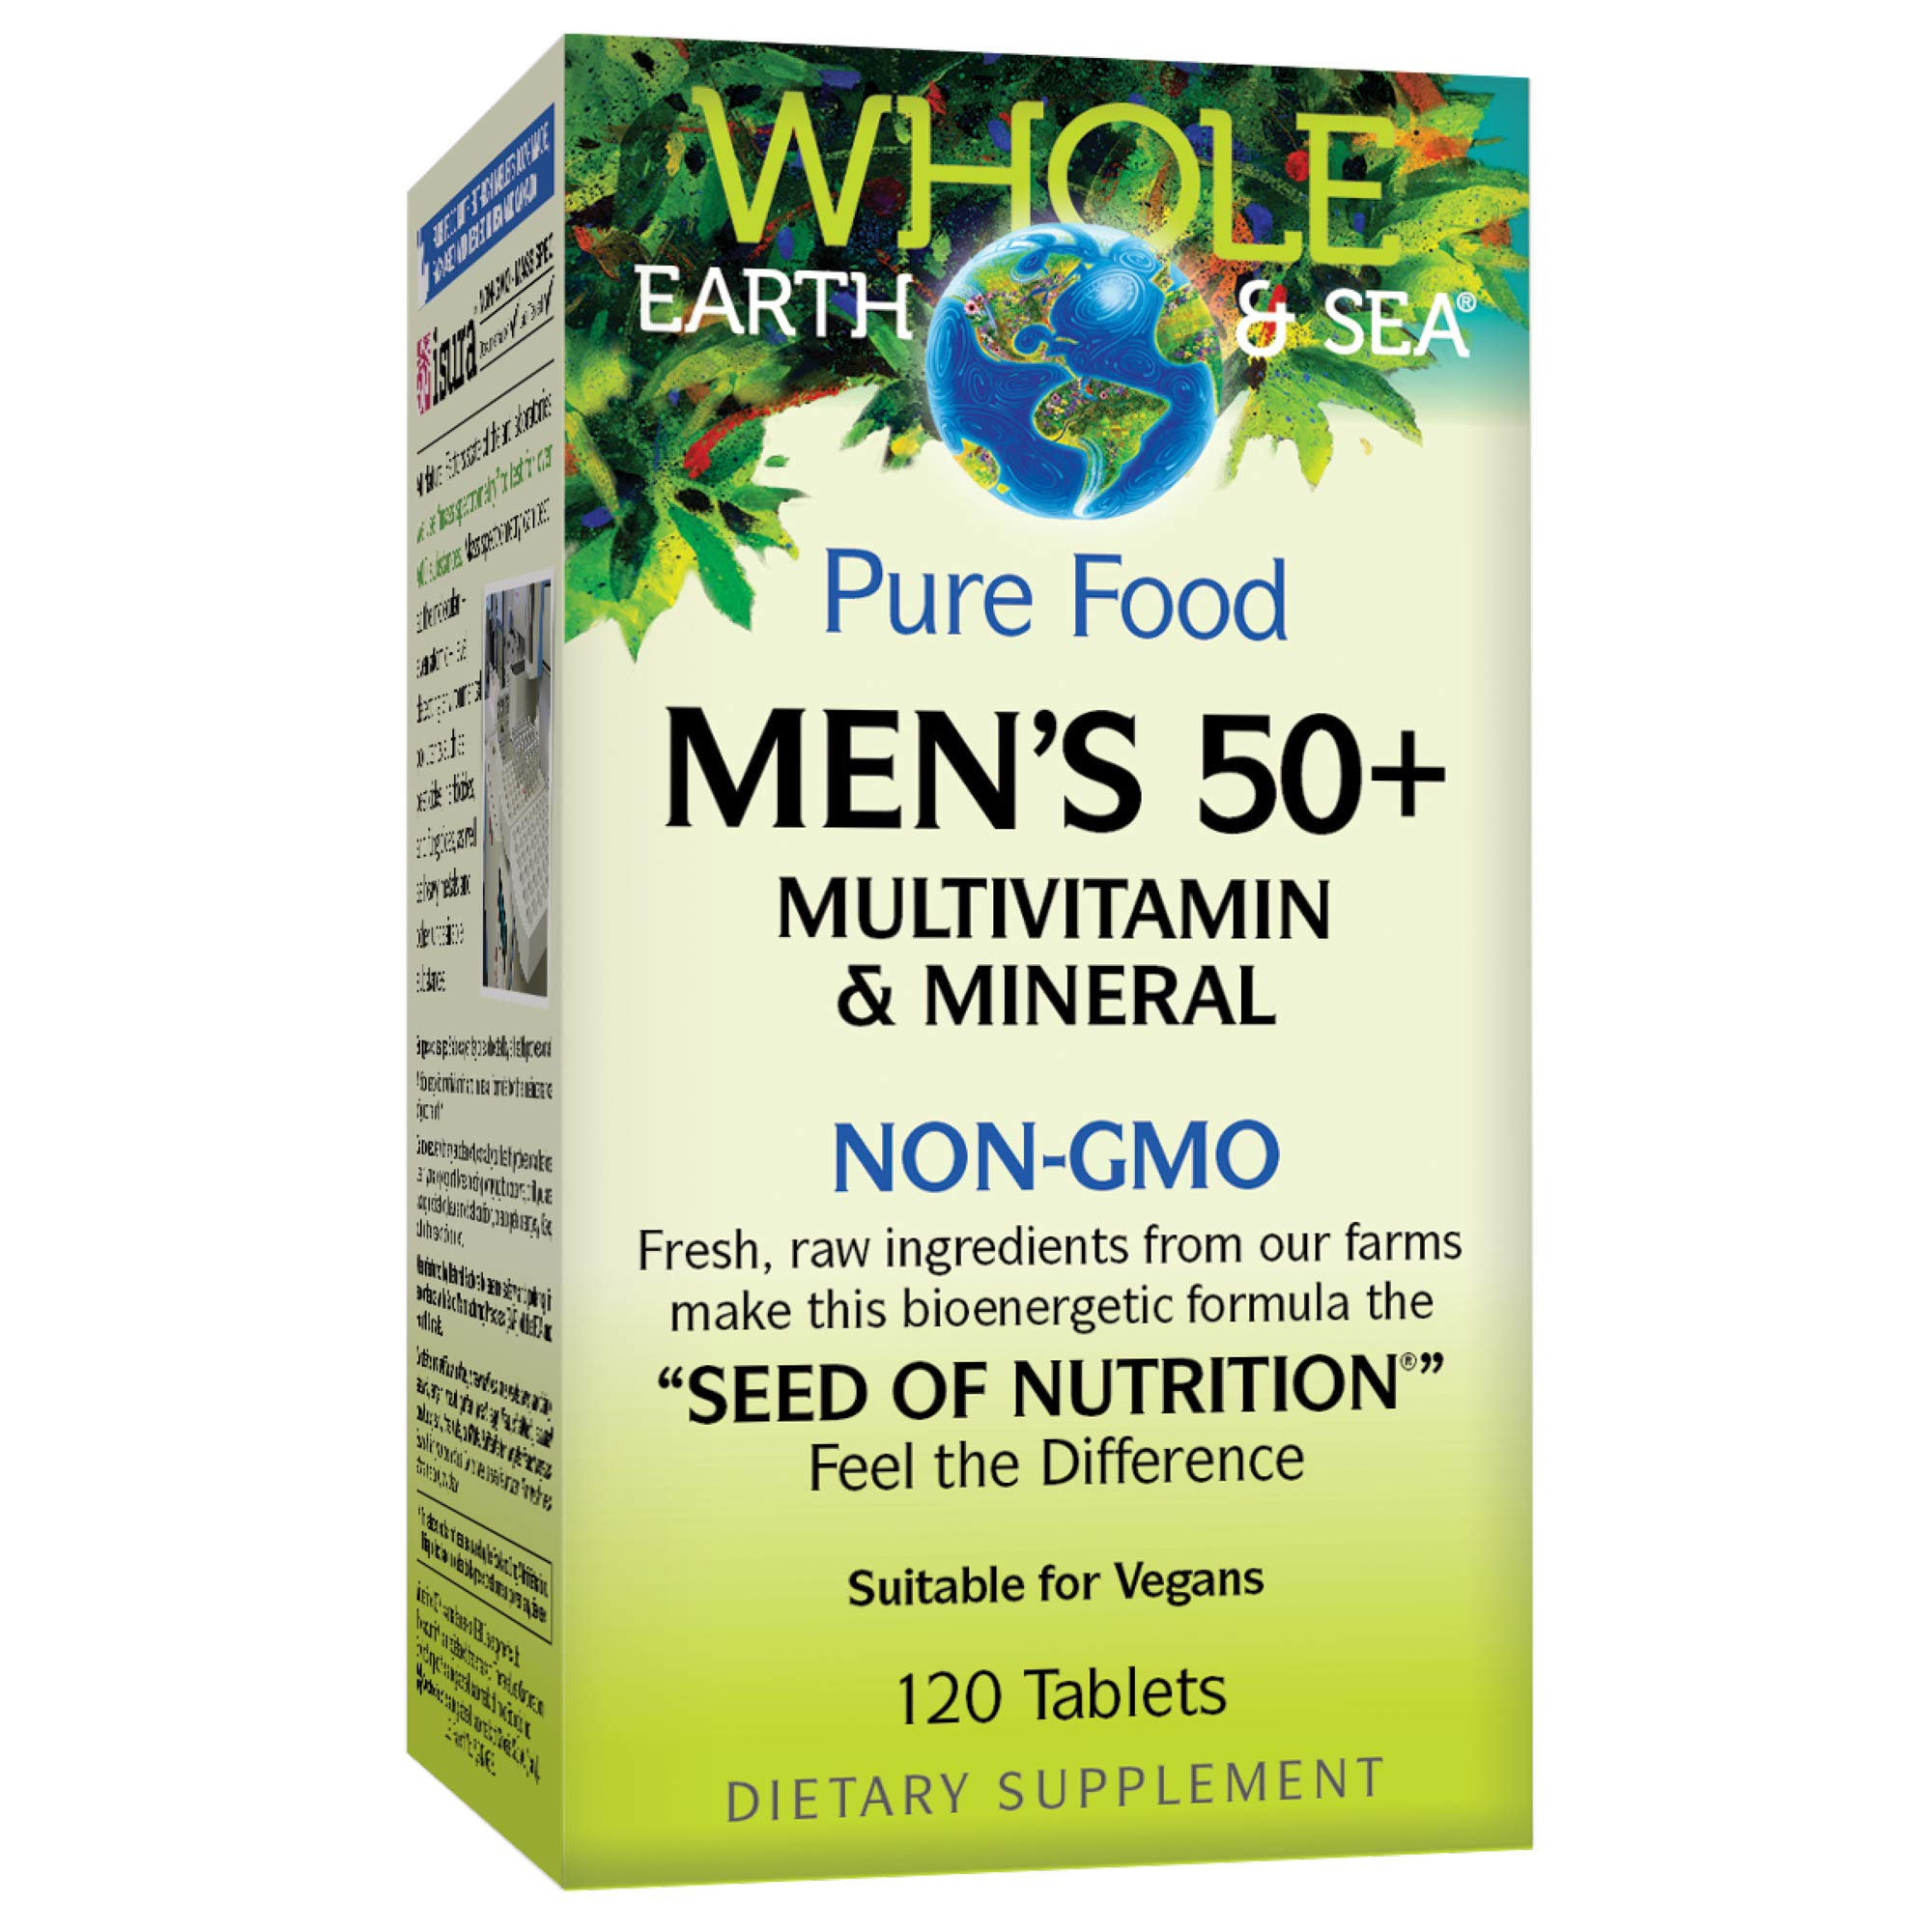 Whole Earth & Sea from Natural Factors, Men's 50+ Multivitamin & Mineral, Whole Food Supplement, Vegan and Gluten Free, 120 Tablets (60 Servings)